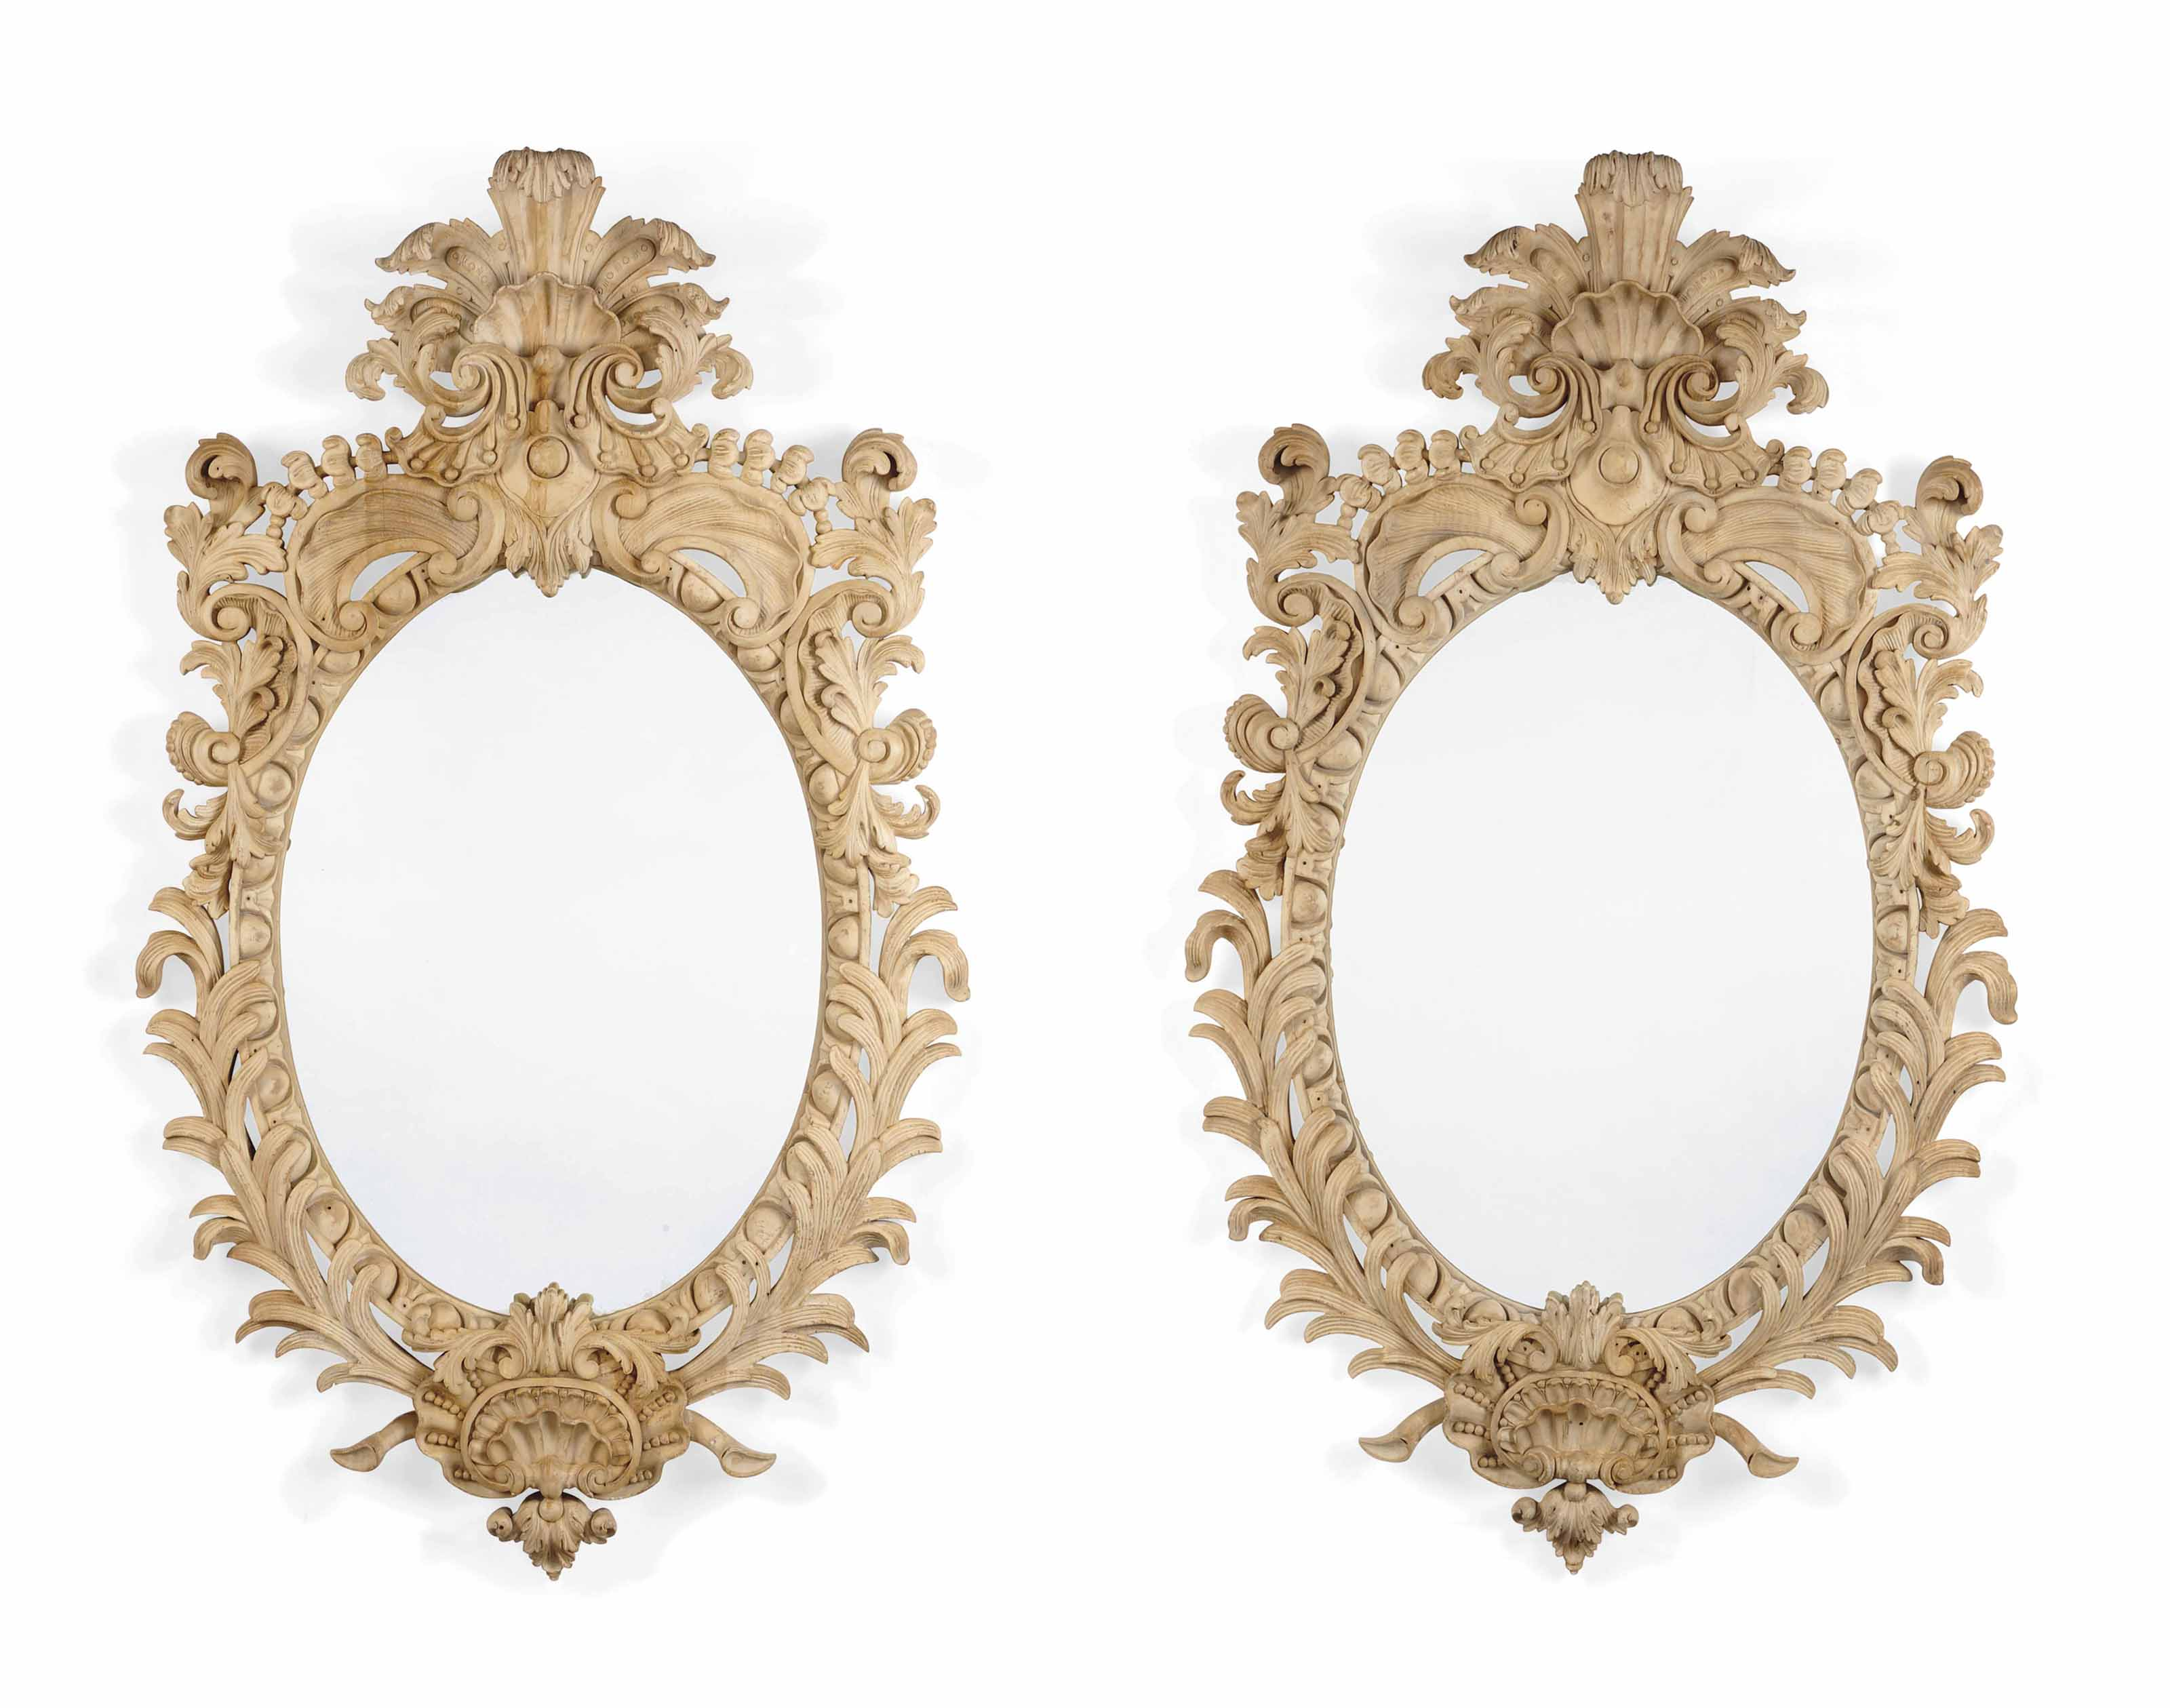 A PAIR OF CREAM-PAINTED MIRROR